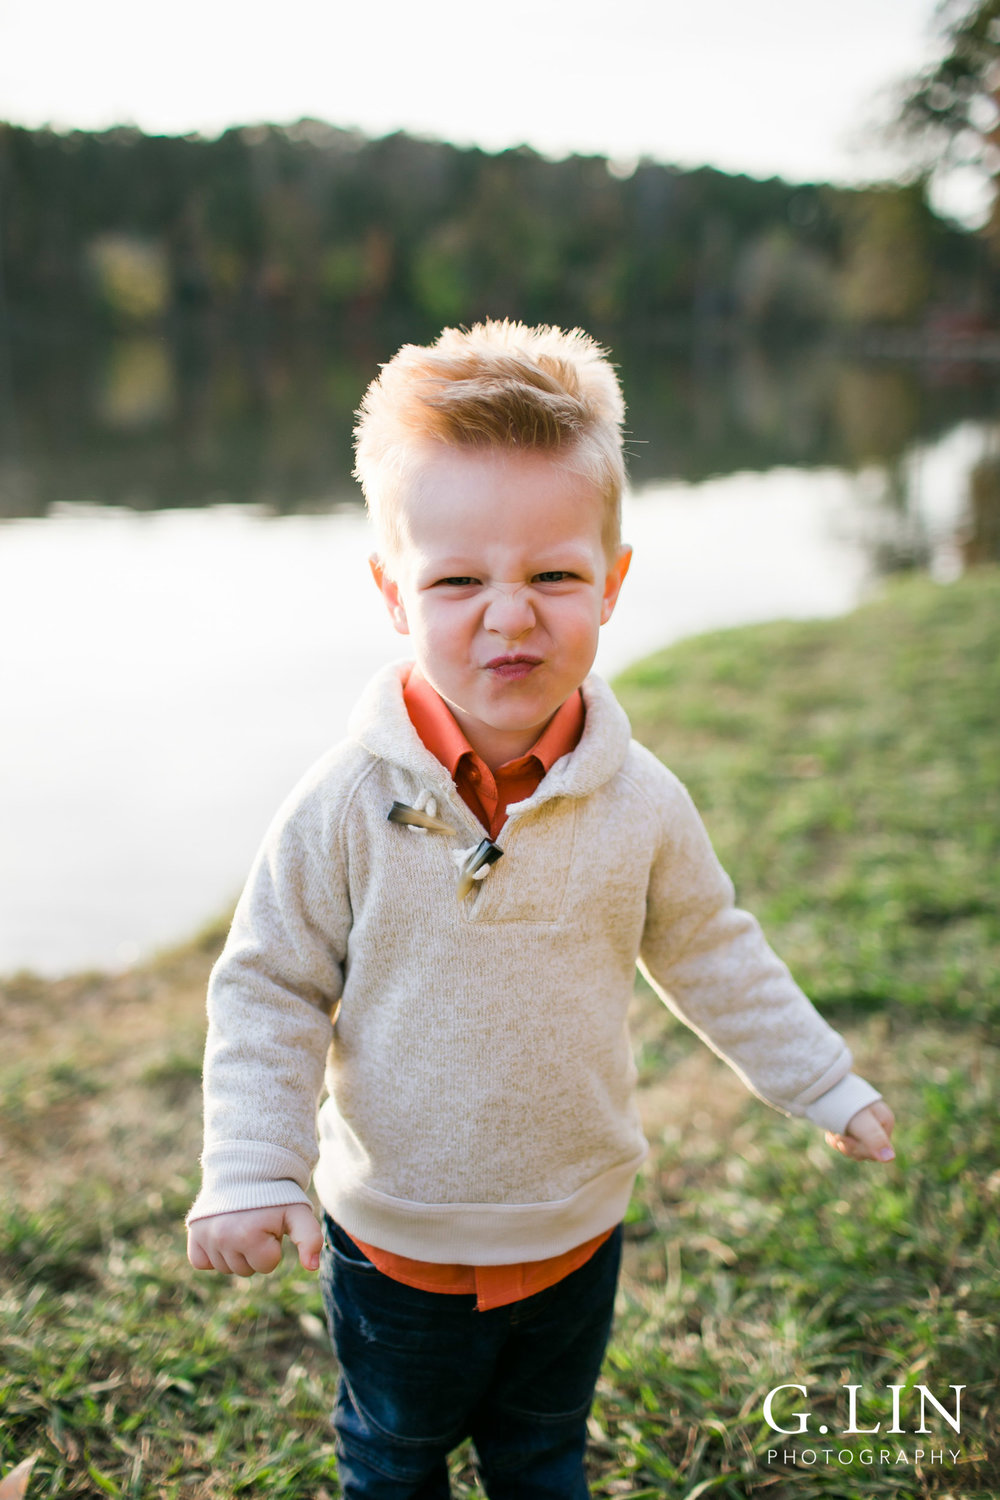 Raleigh Family Photographer | G. Lin Photography | portrait of youngest sibling making a funny face